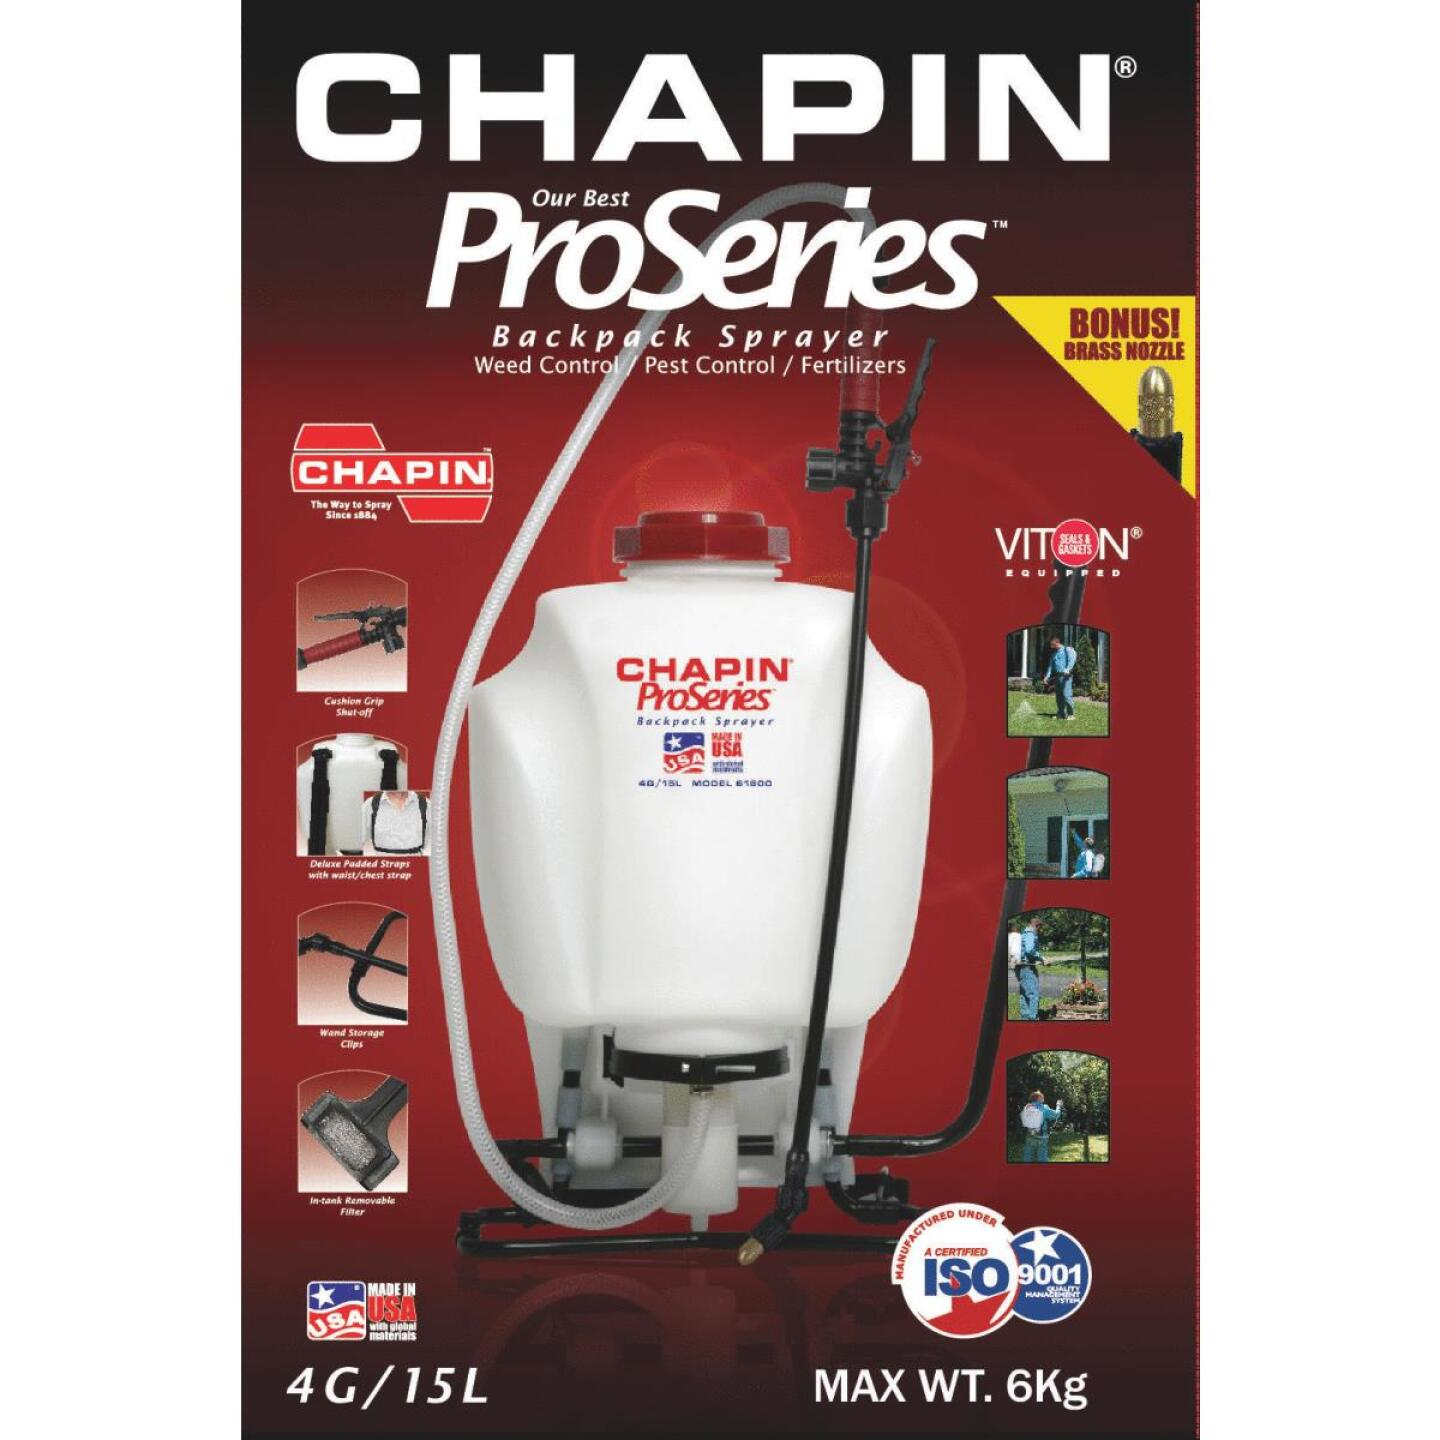 Chapin ProSeries 4 Gal. Backpack Sprayer Image 2